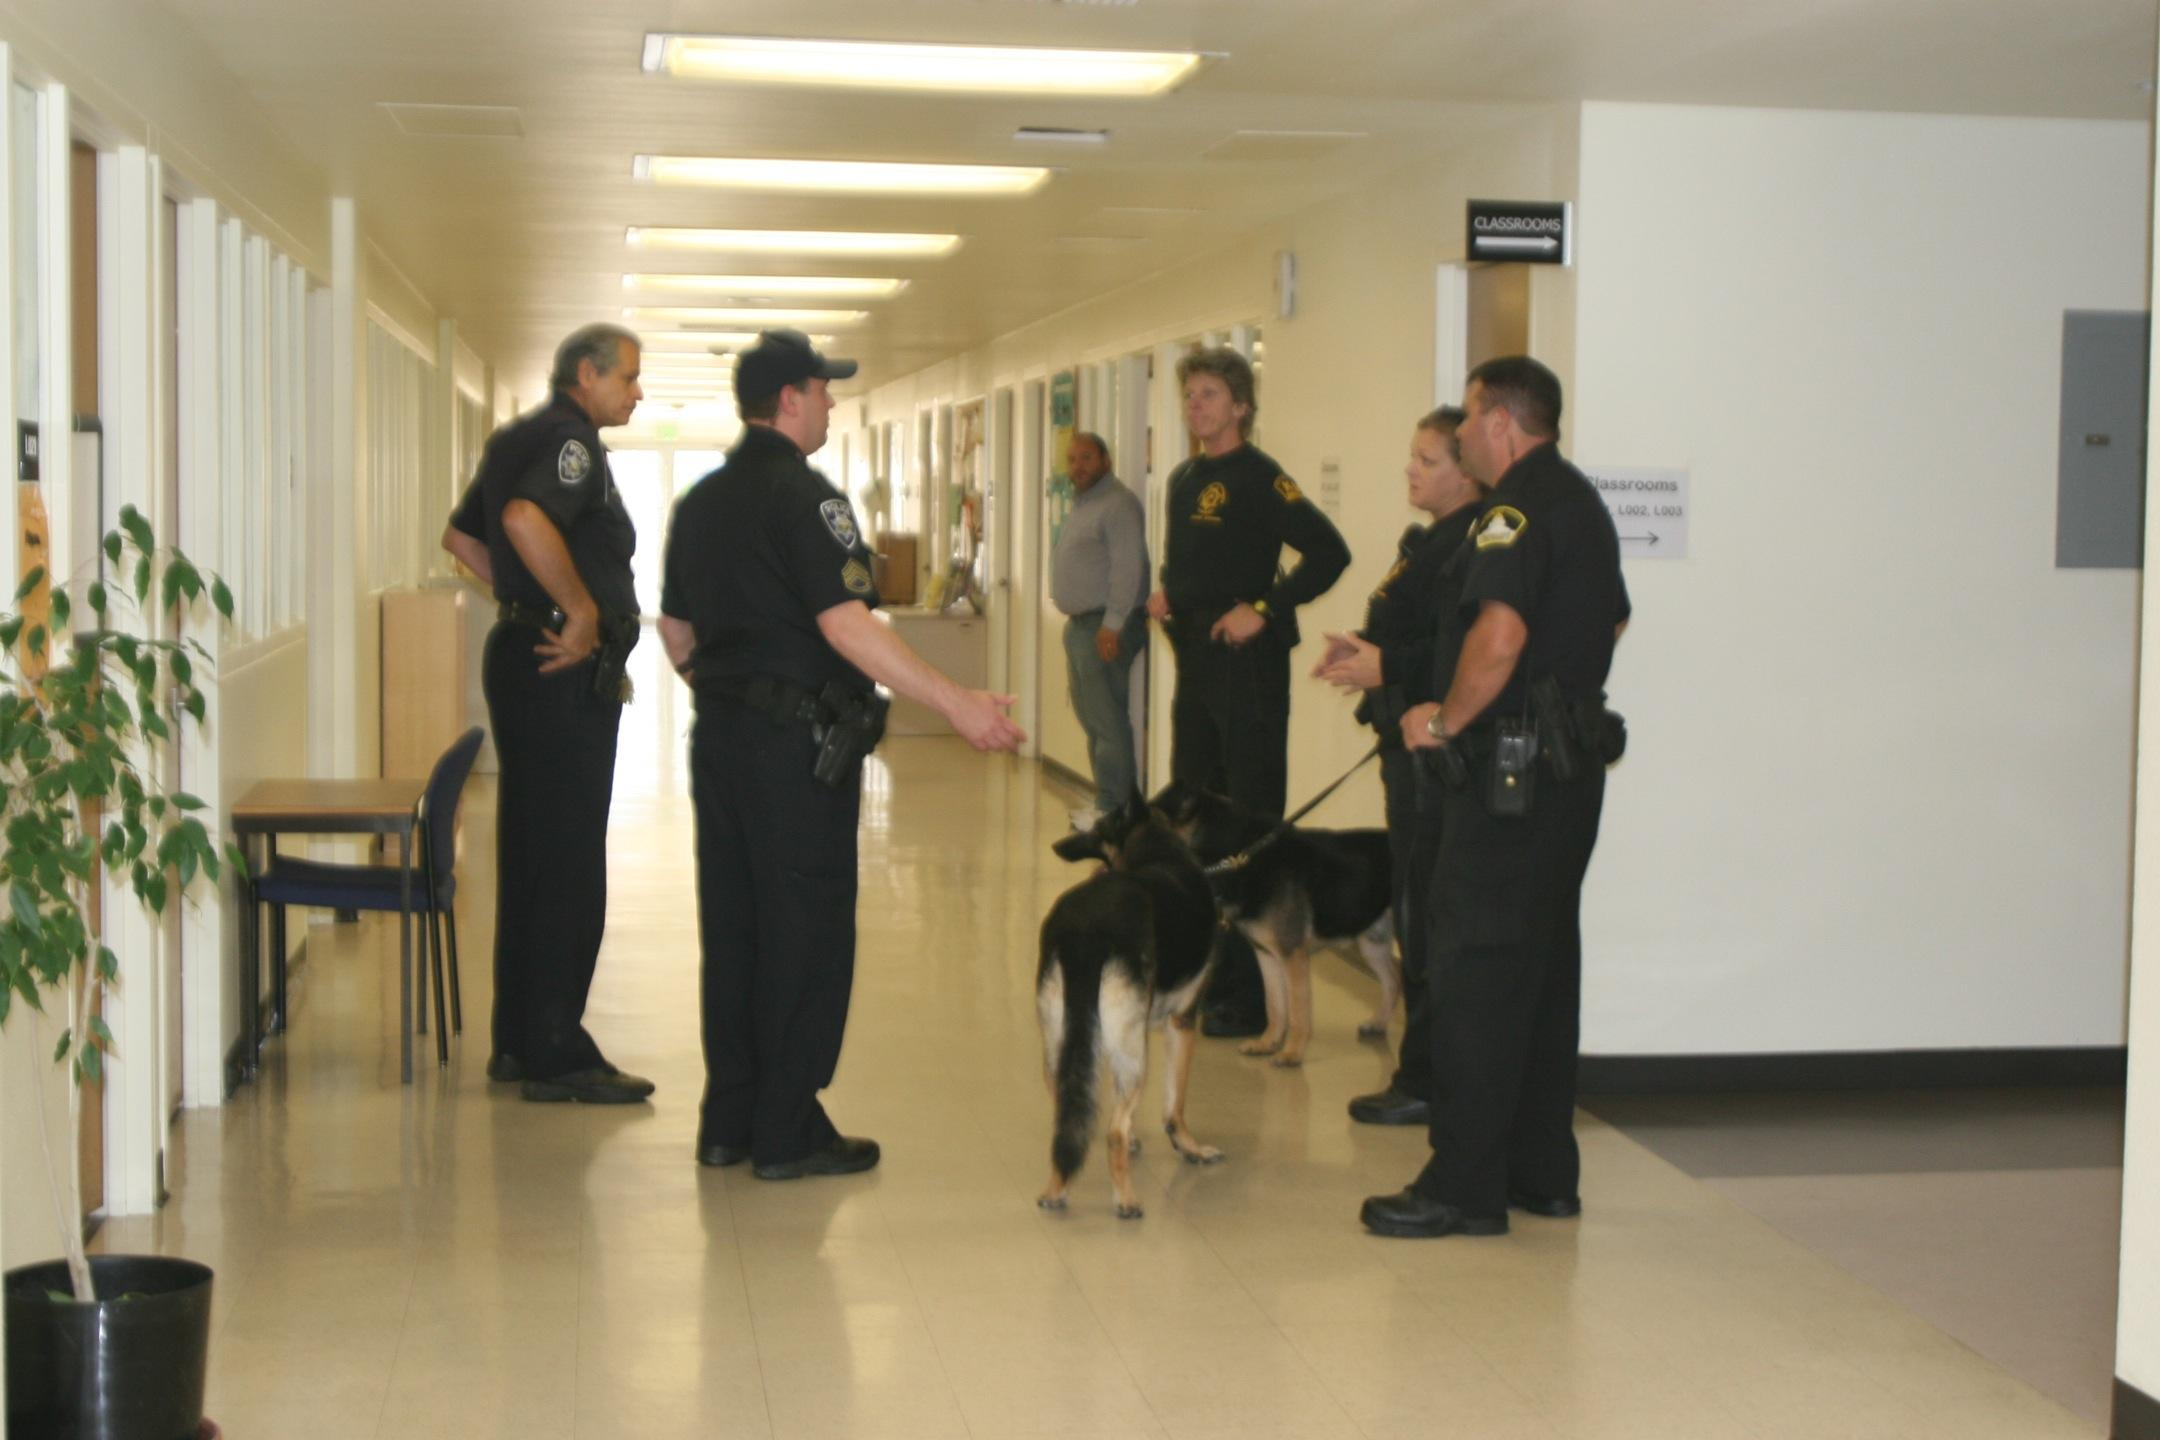 Members of Sacramento County Sheriff and campus police check bomb threat Oct. 6, 2011. (Photo by Corina Snyder)